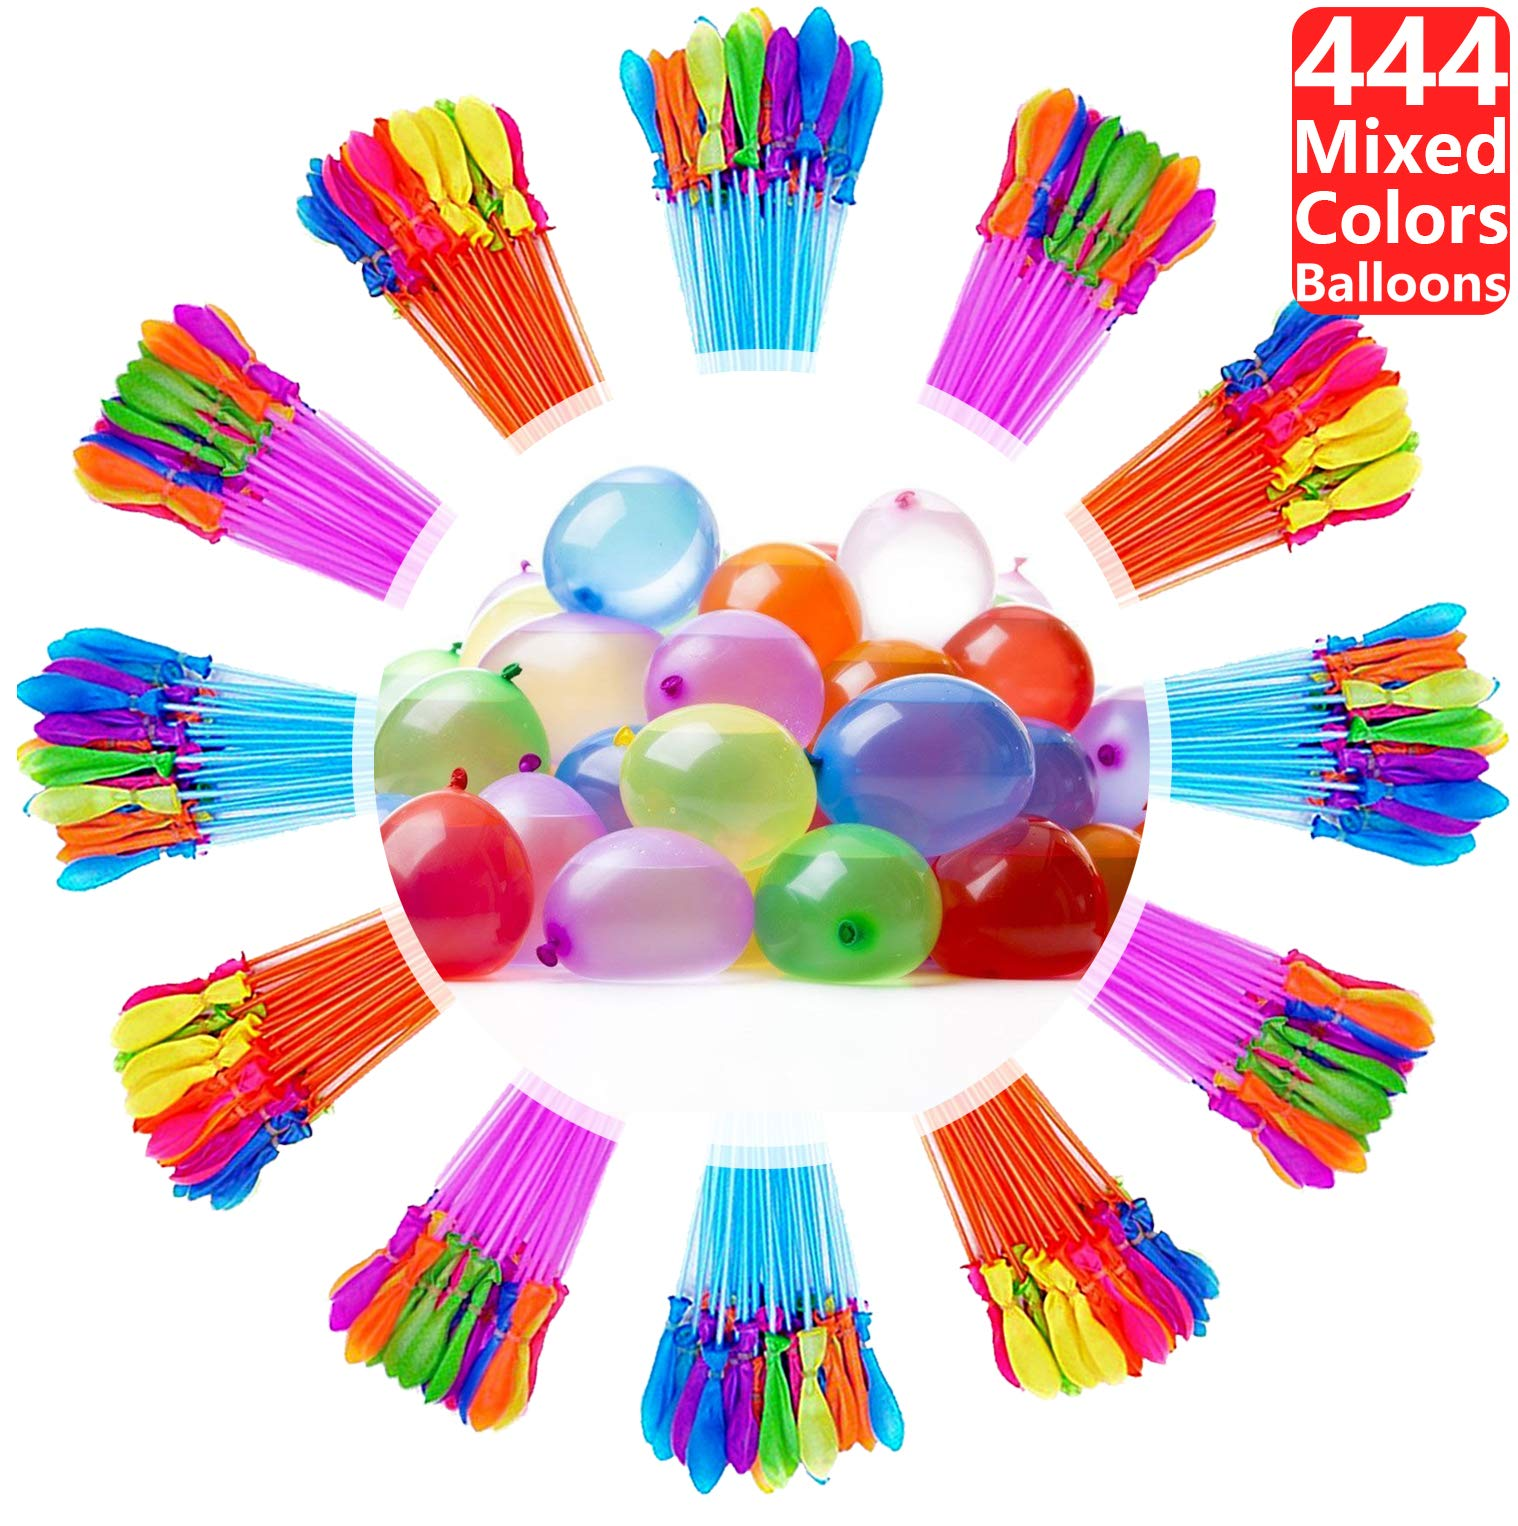 Water Balloons for Kids Girls Boys Balloons Set Party Games Quick Fill Water Balloons 444 Bunches Swimming Pool Outdoor Summer Fun C10 by Magic balloons